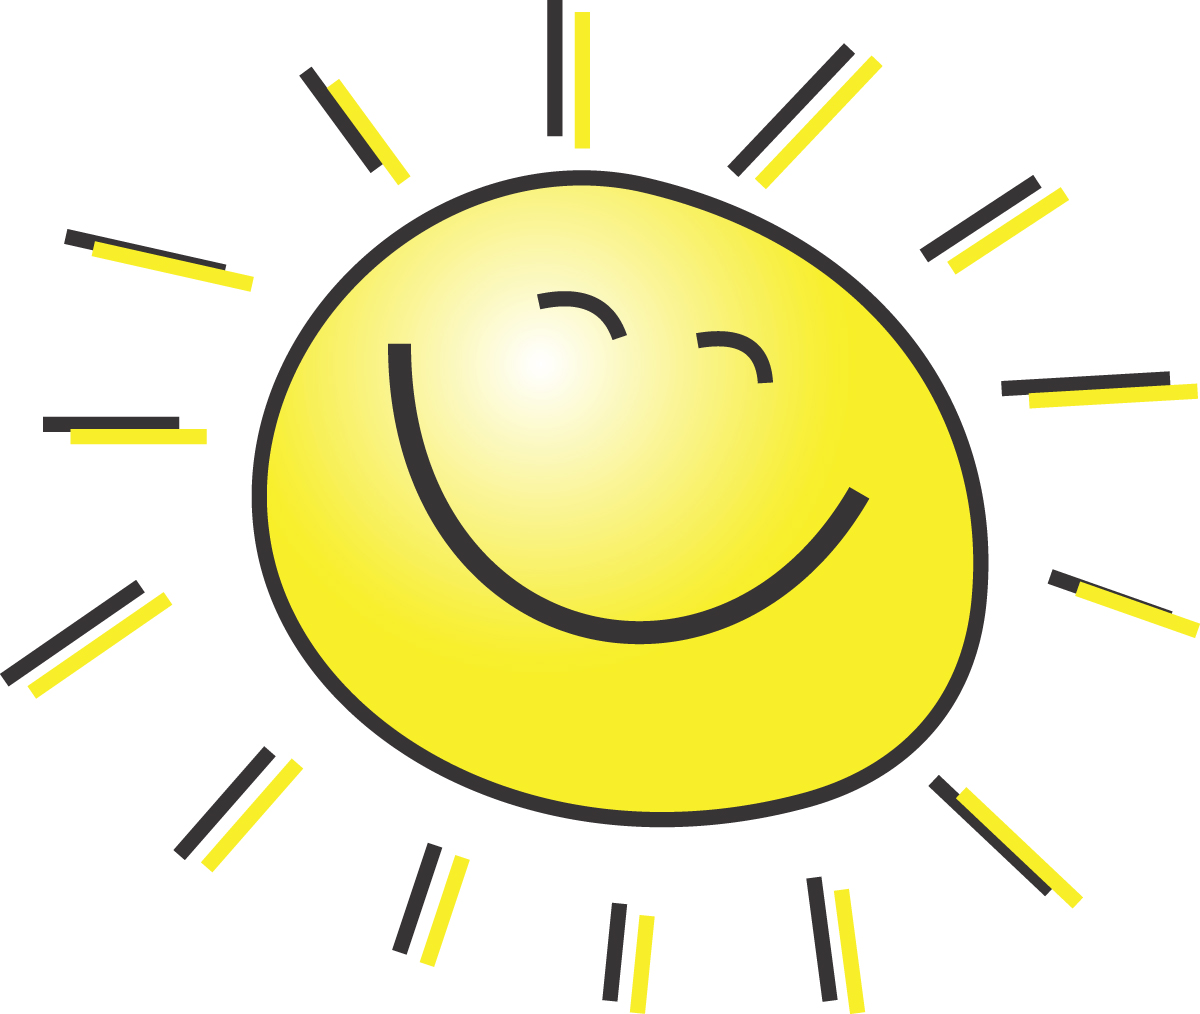 summer clipart illustration of a happy smiling sun rh free clipartof com Emoticons Smiley Faces Clip Art smiley sun face clipart free